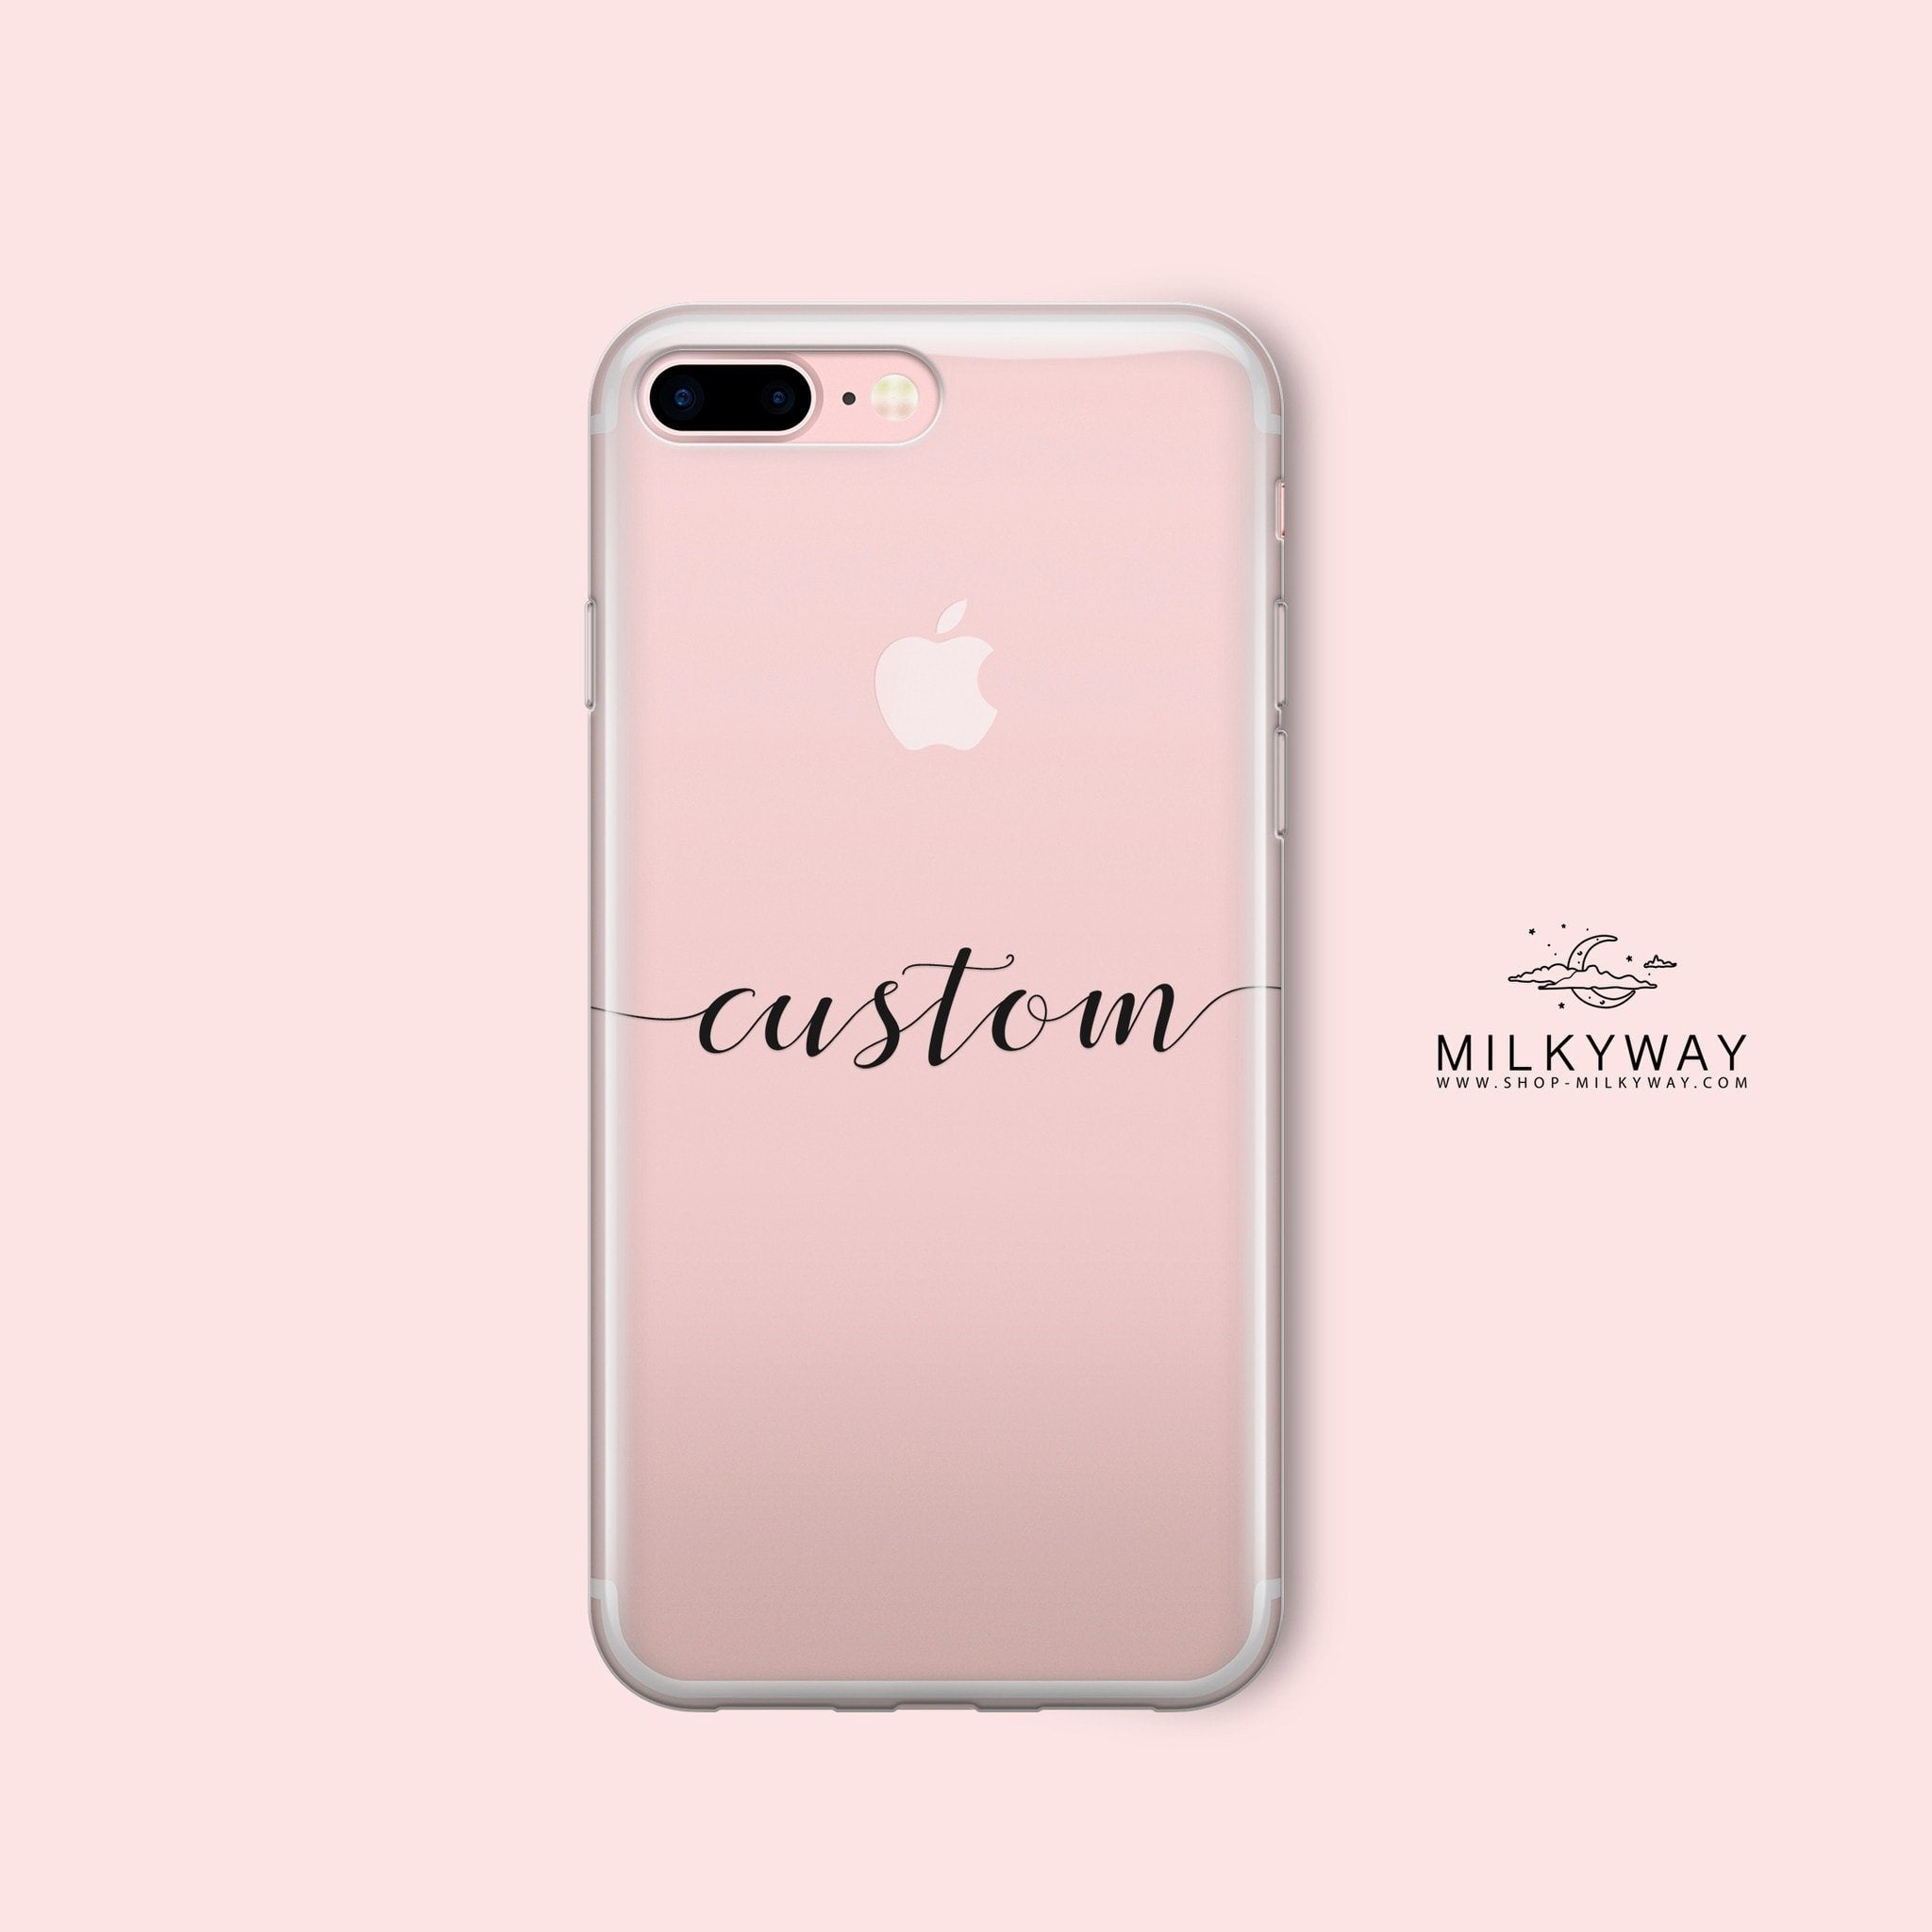 Customize An Iphone Or Android Phone Case With Your Name